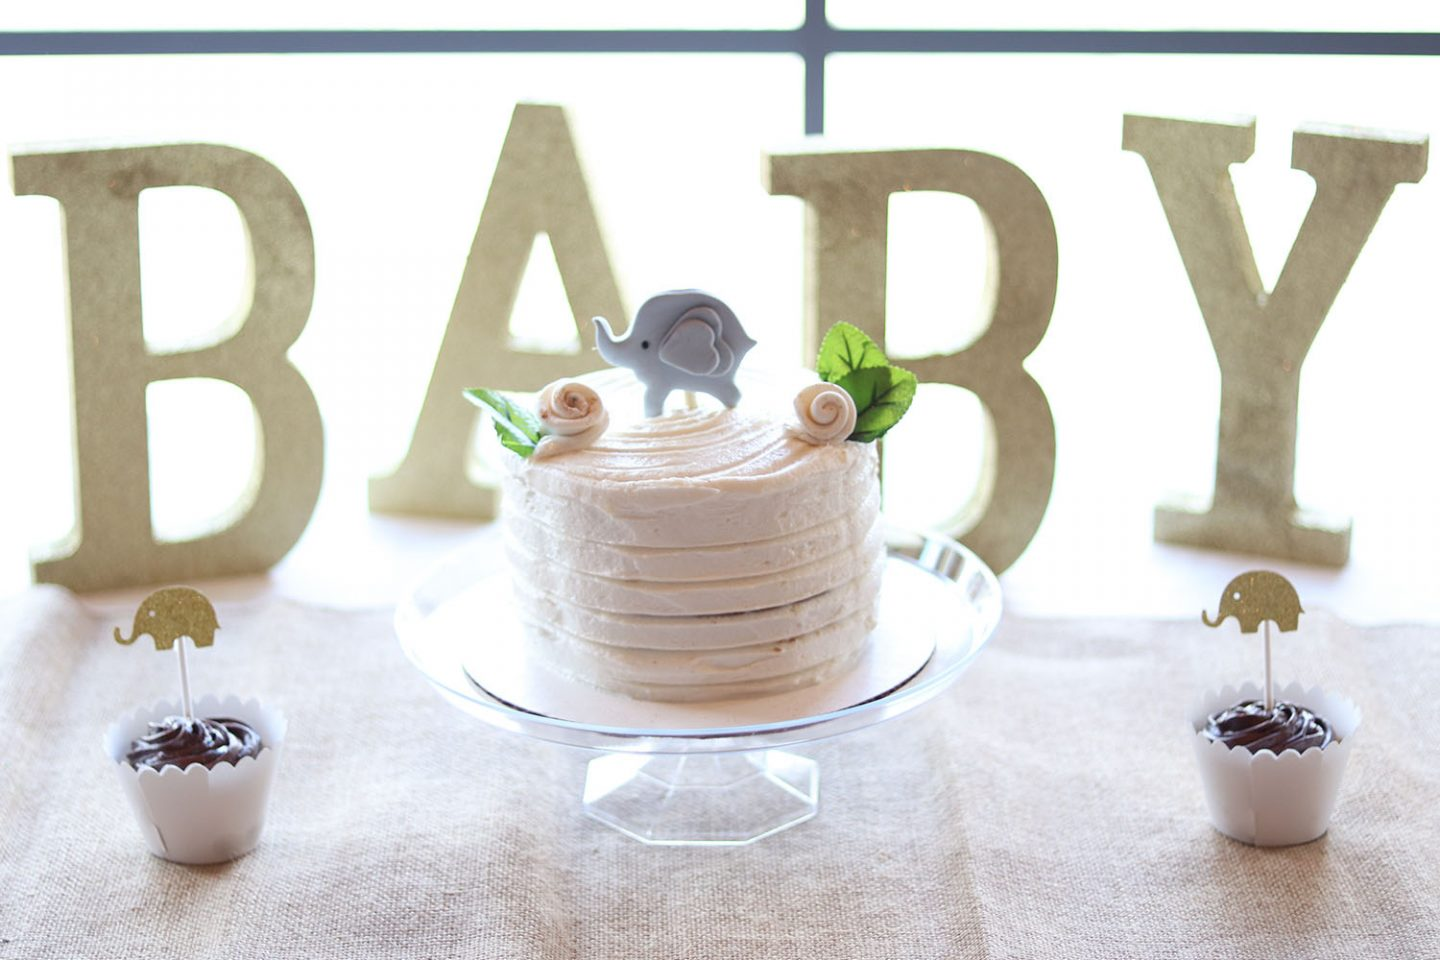 My Simple Neutral Baby Shower For Baby Girl | Brighter Darling Blog